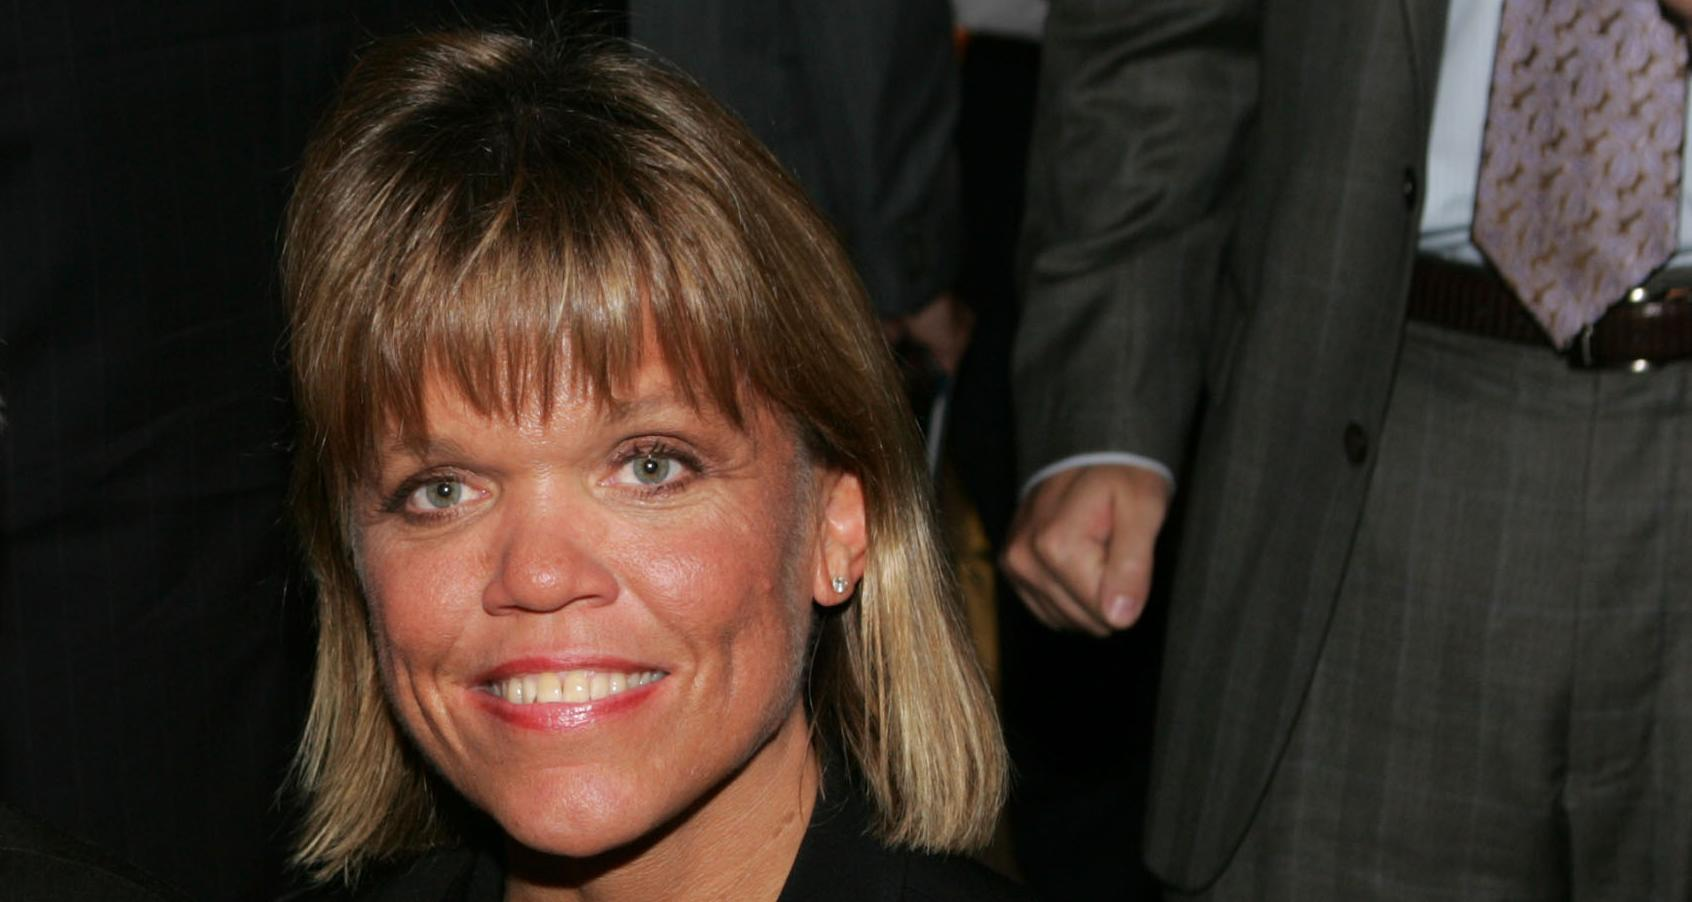 Amy Roloff and her ex-husband, Matt Roloff